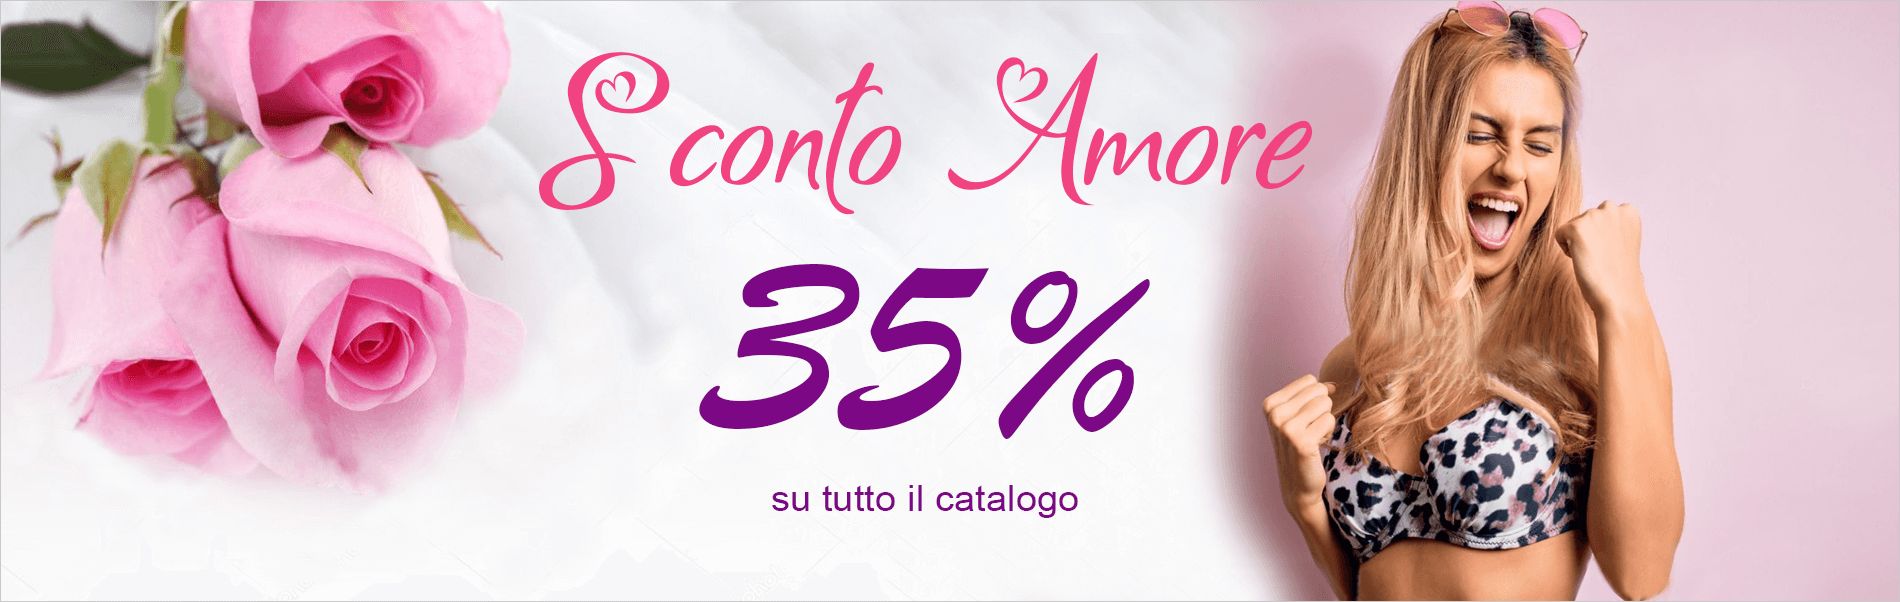 9d3e82d81a6dcf6a1ef24d8871724f661f957f20_banner-slider-coupon-sconto-love.png